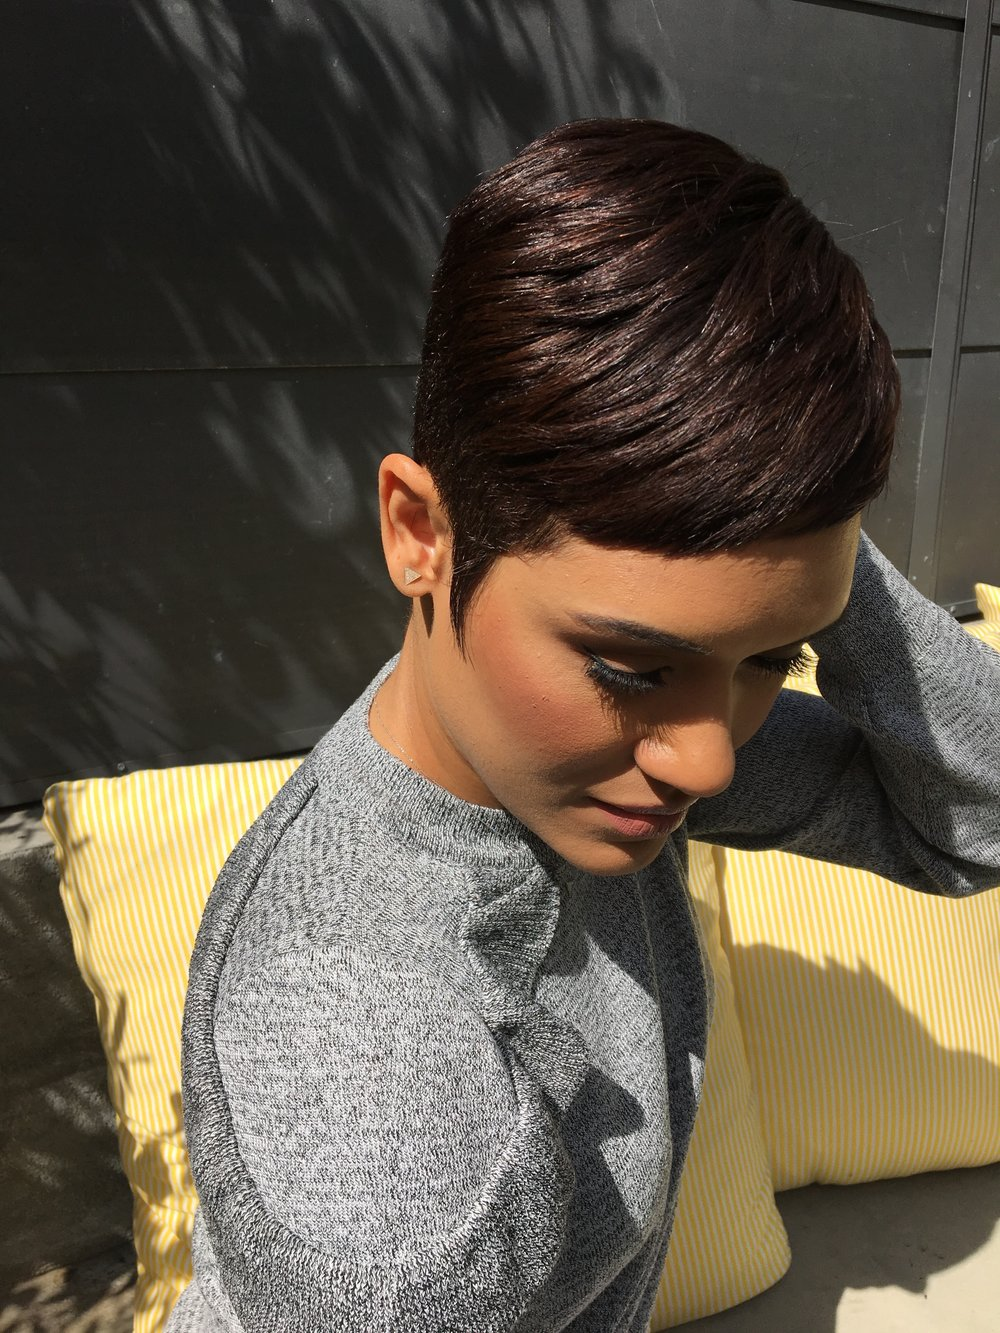 Color by Amber Curry on actress Grace Byers for the TV show Empire